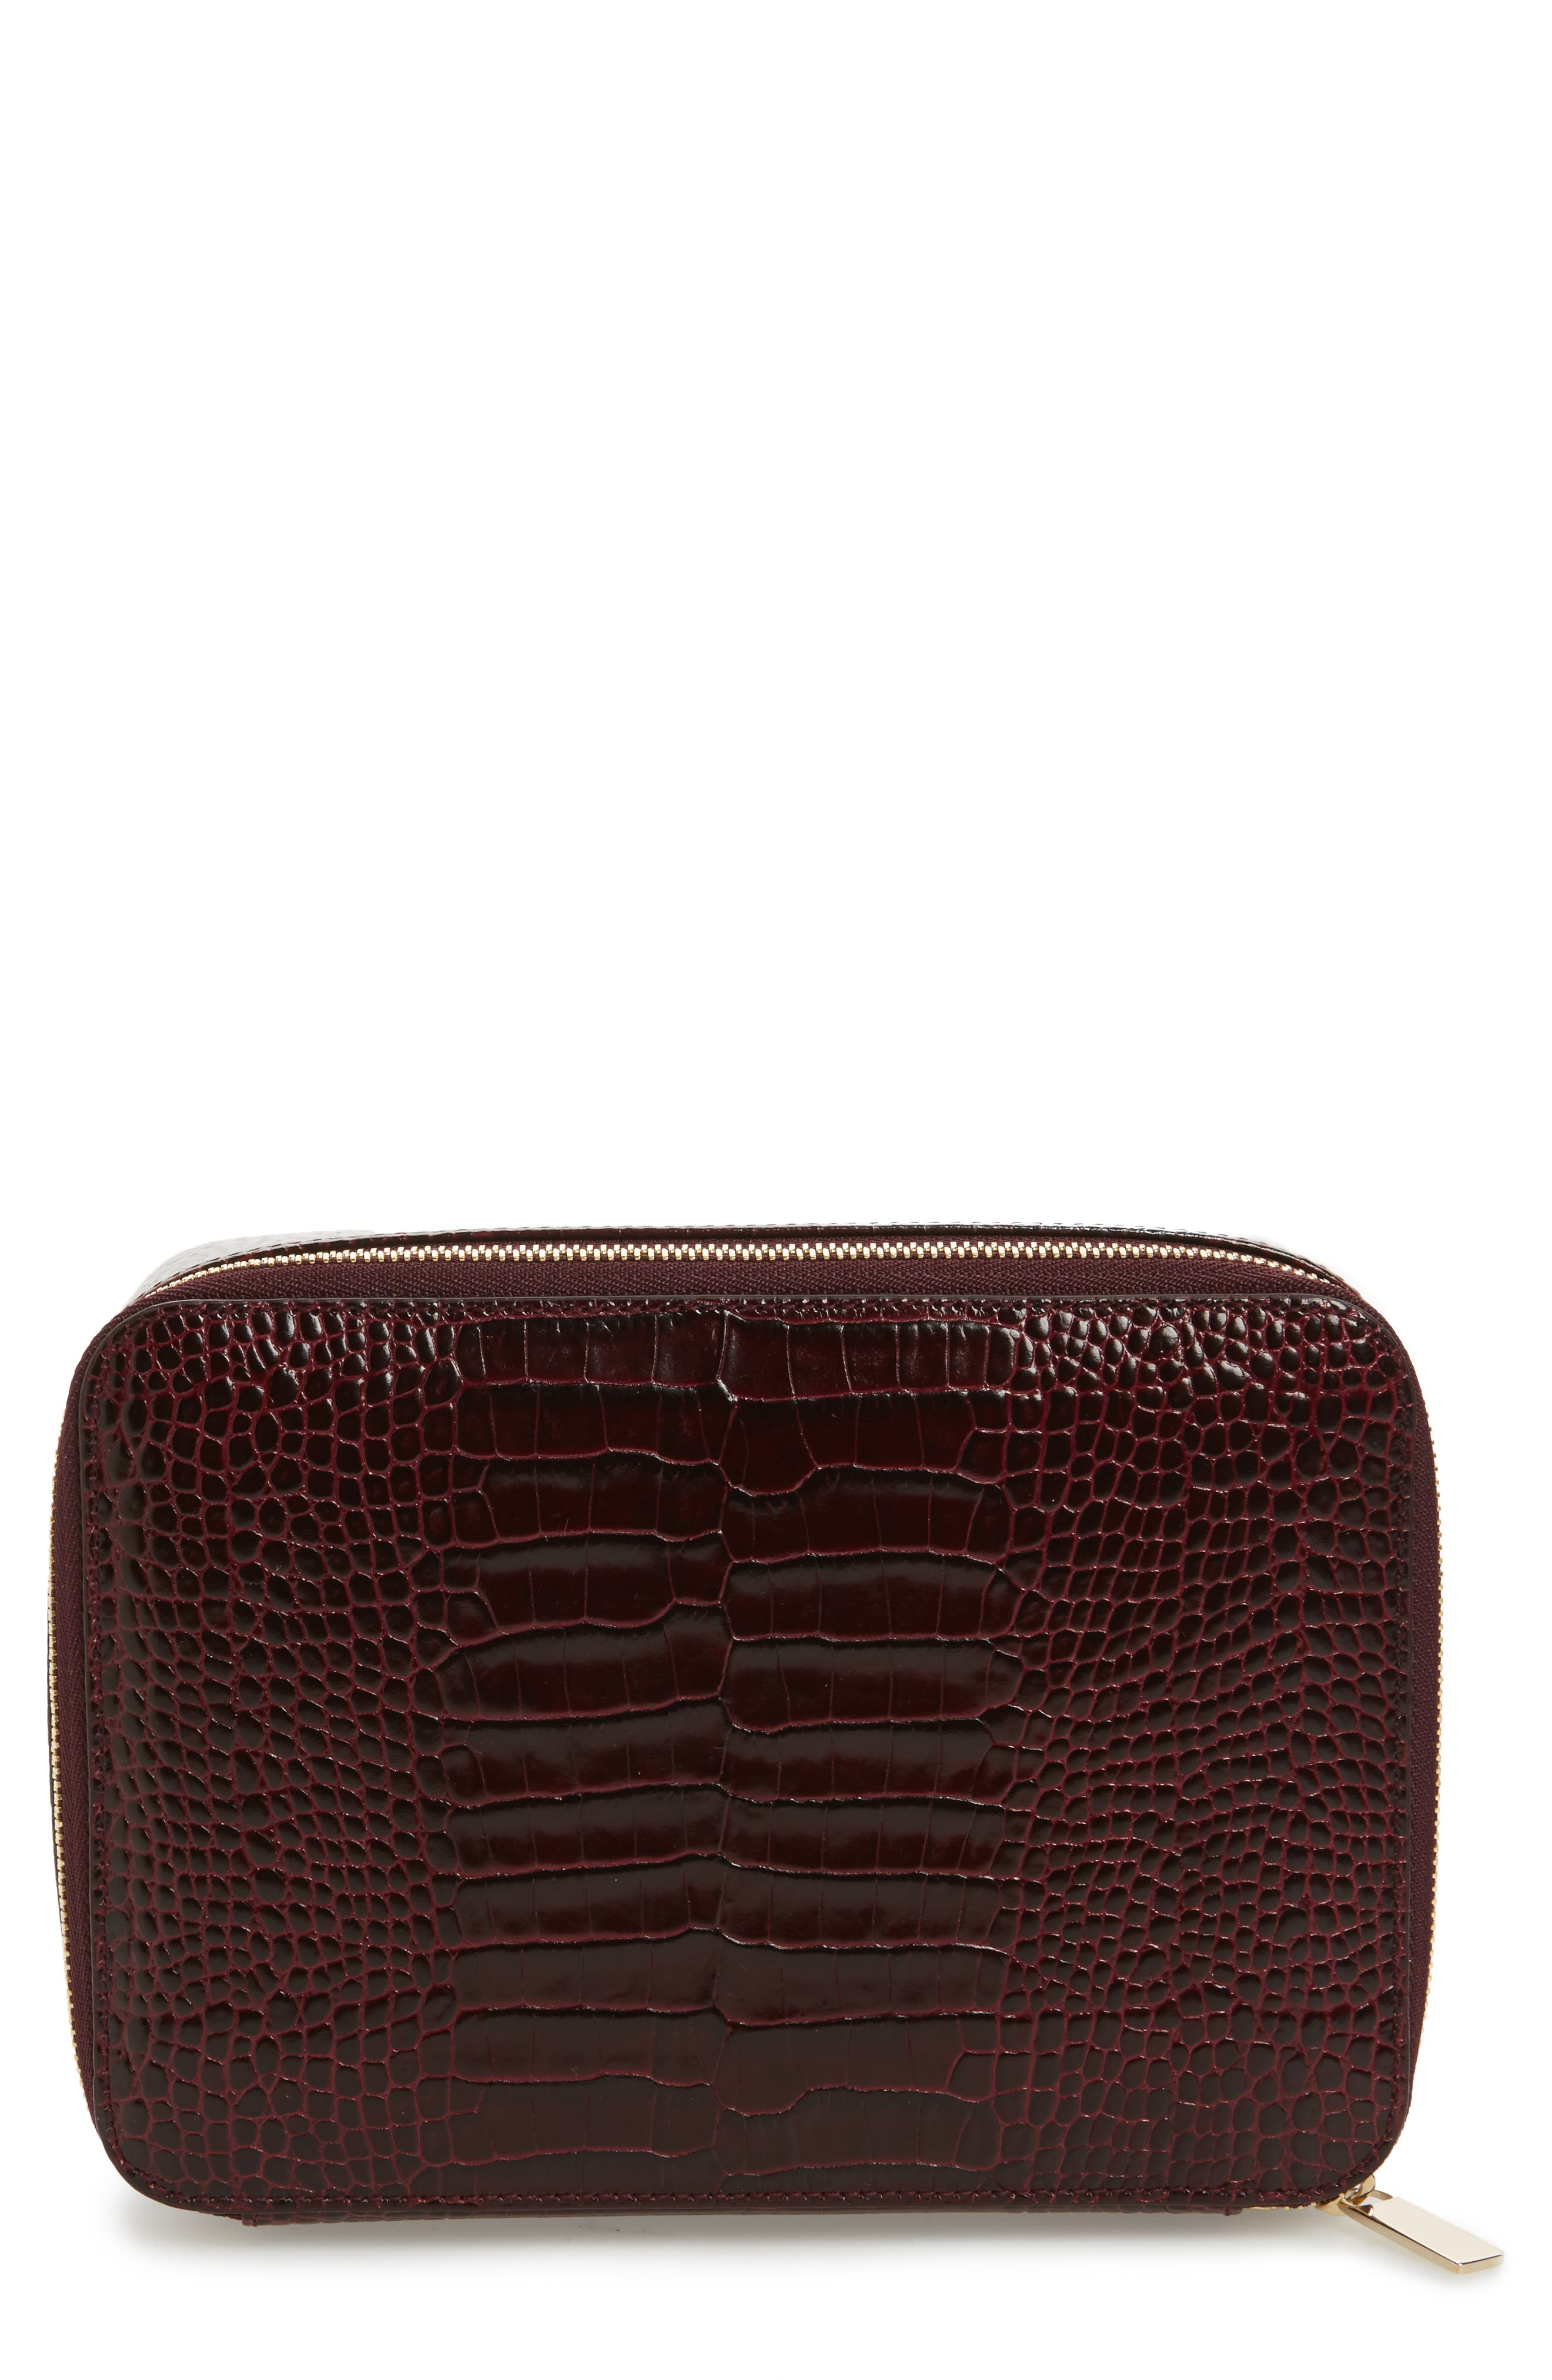 Smythson Mara Square Croc Embossed Leather Travel Case